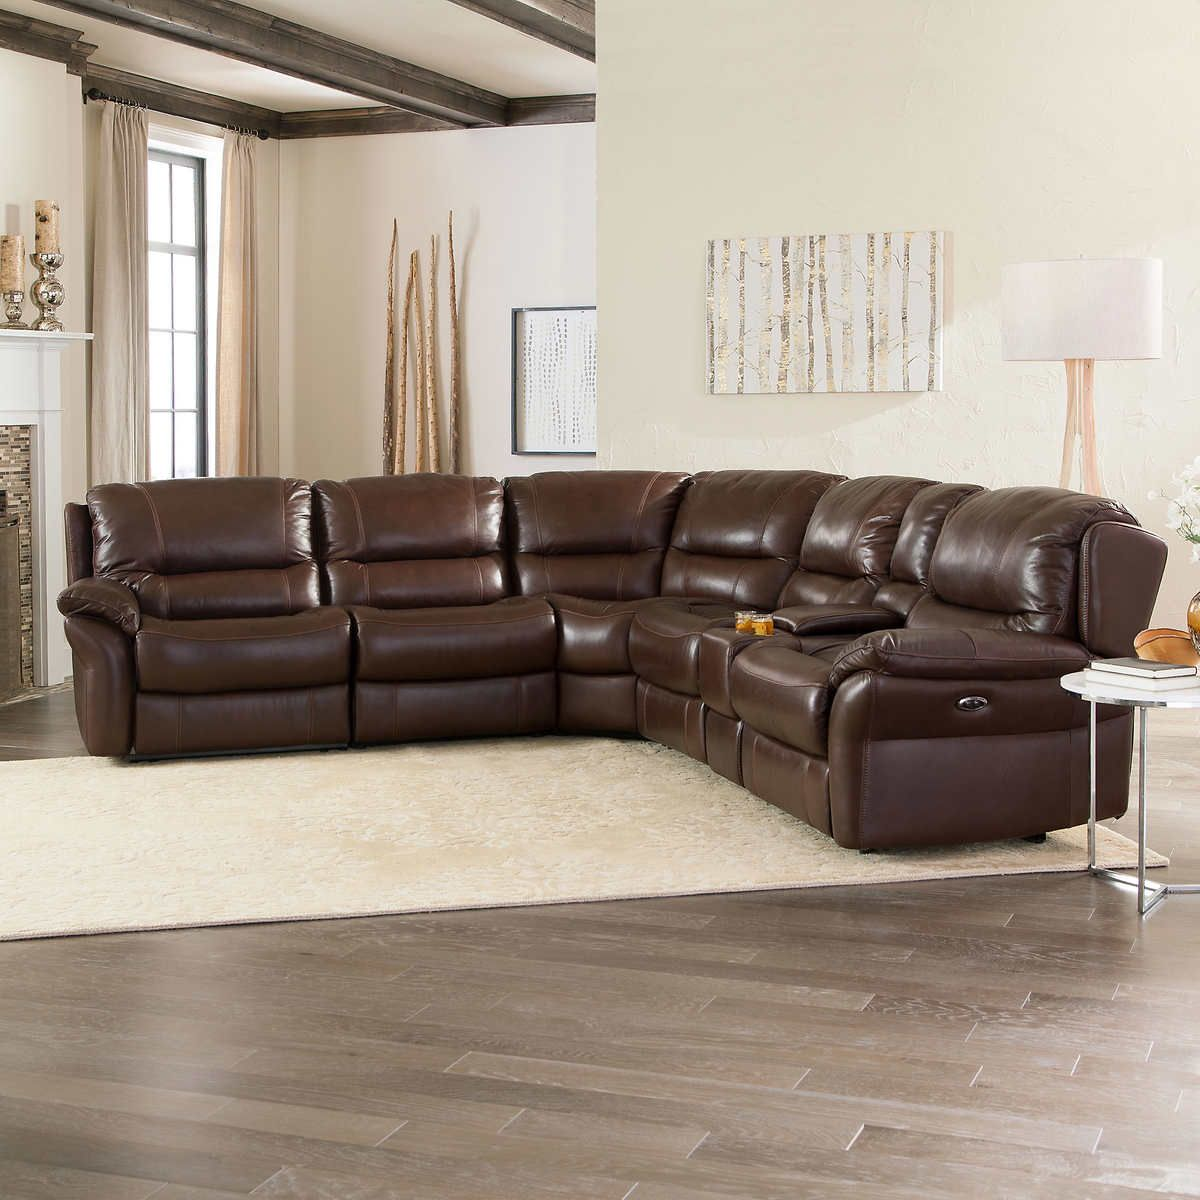 Cool Costco Couches , Amazing Costco Couches 30 With Additional Sofa Design  Ideas With Costco Couches , Http://sofascouch.com/costco Couches/17076 U2026